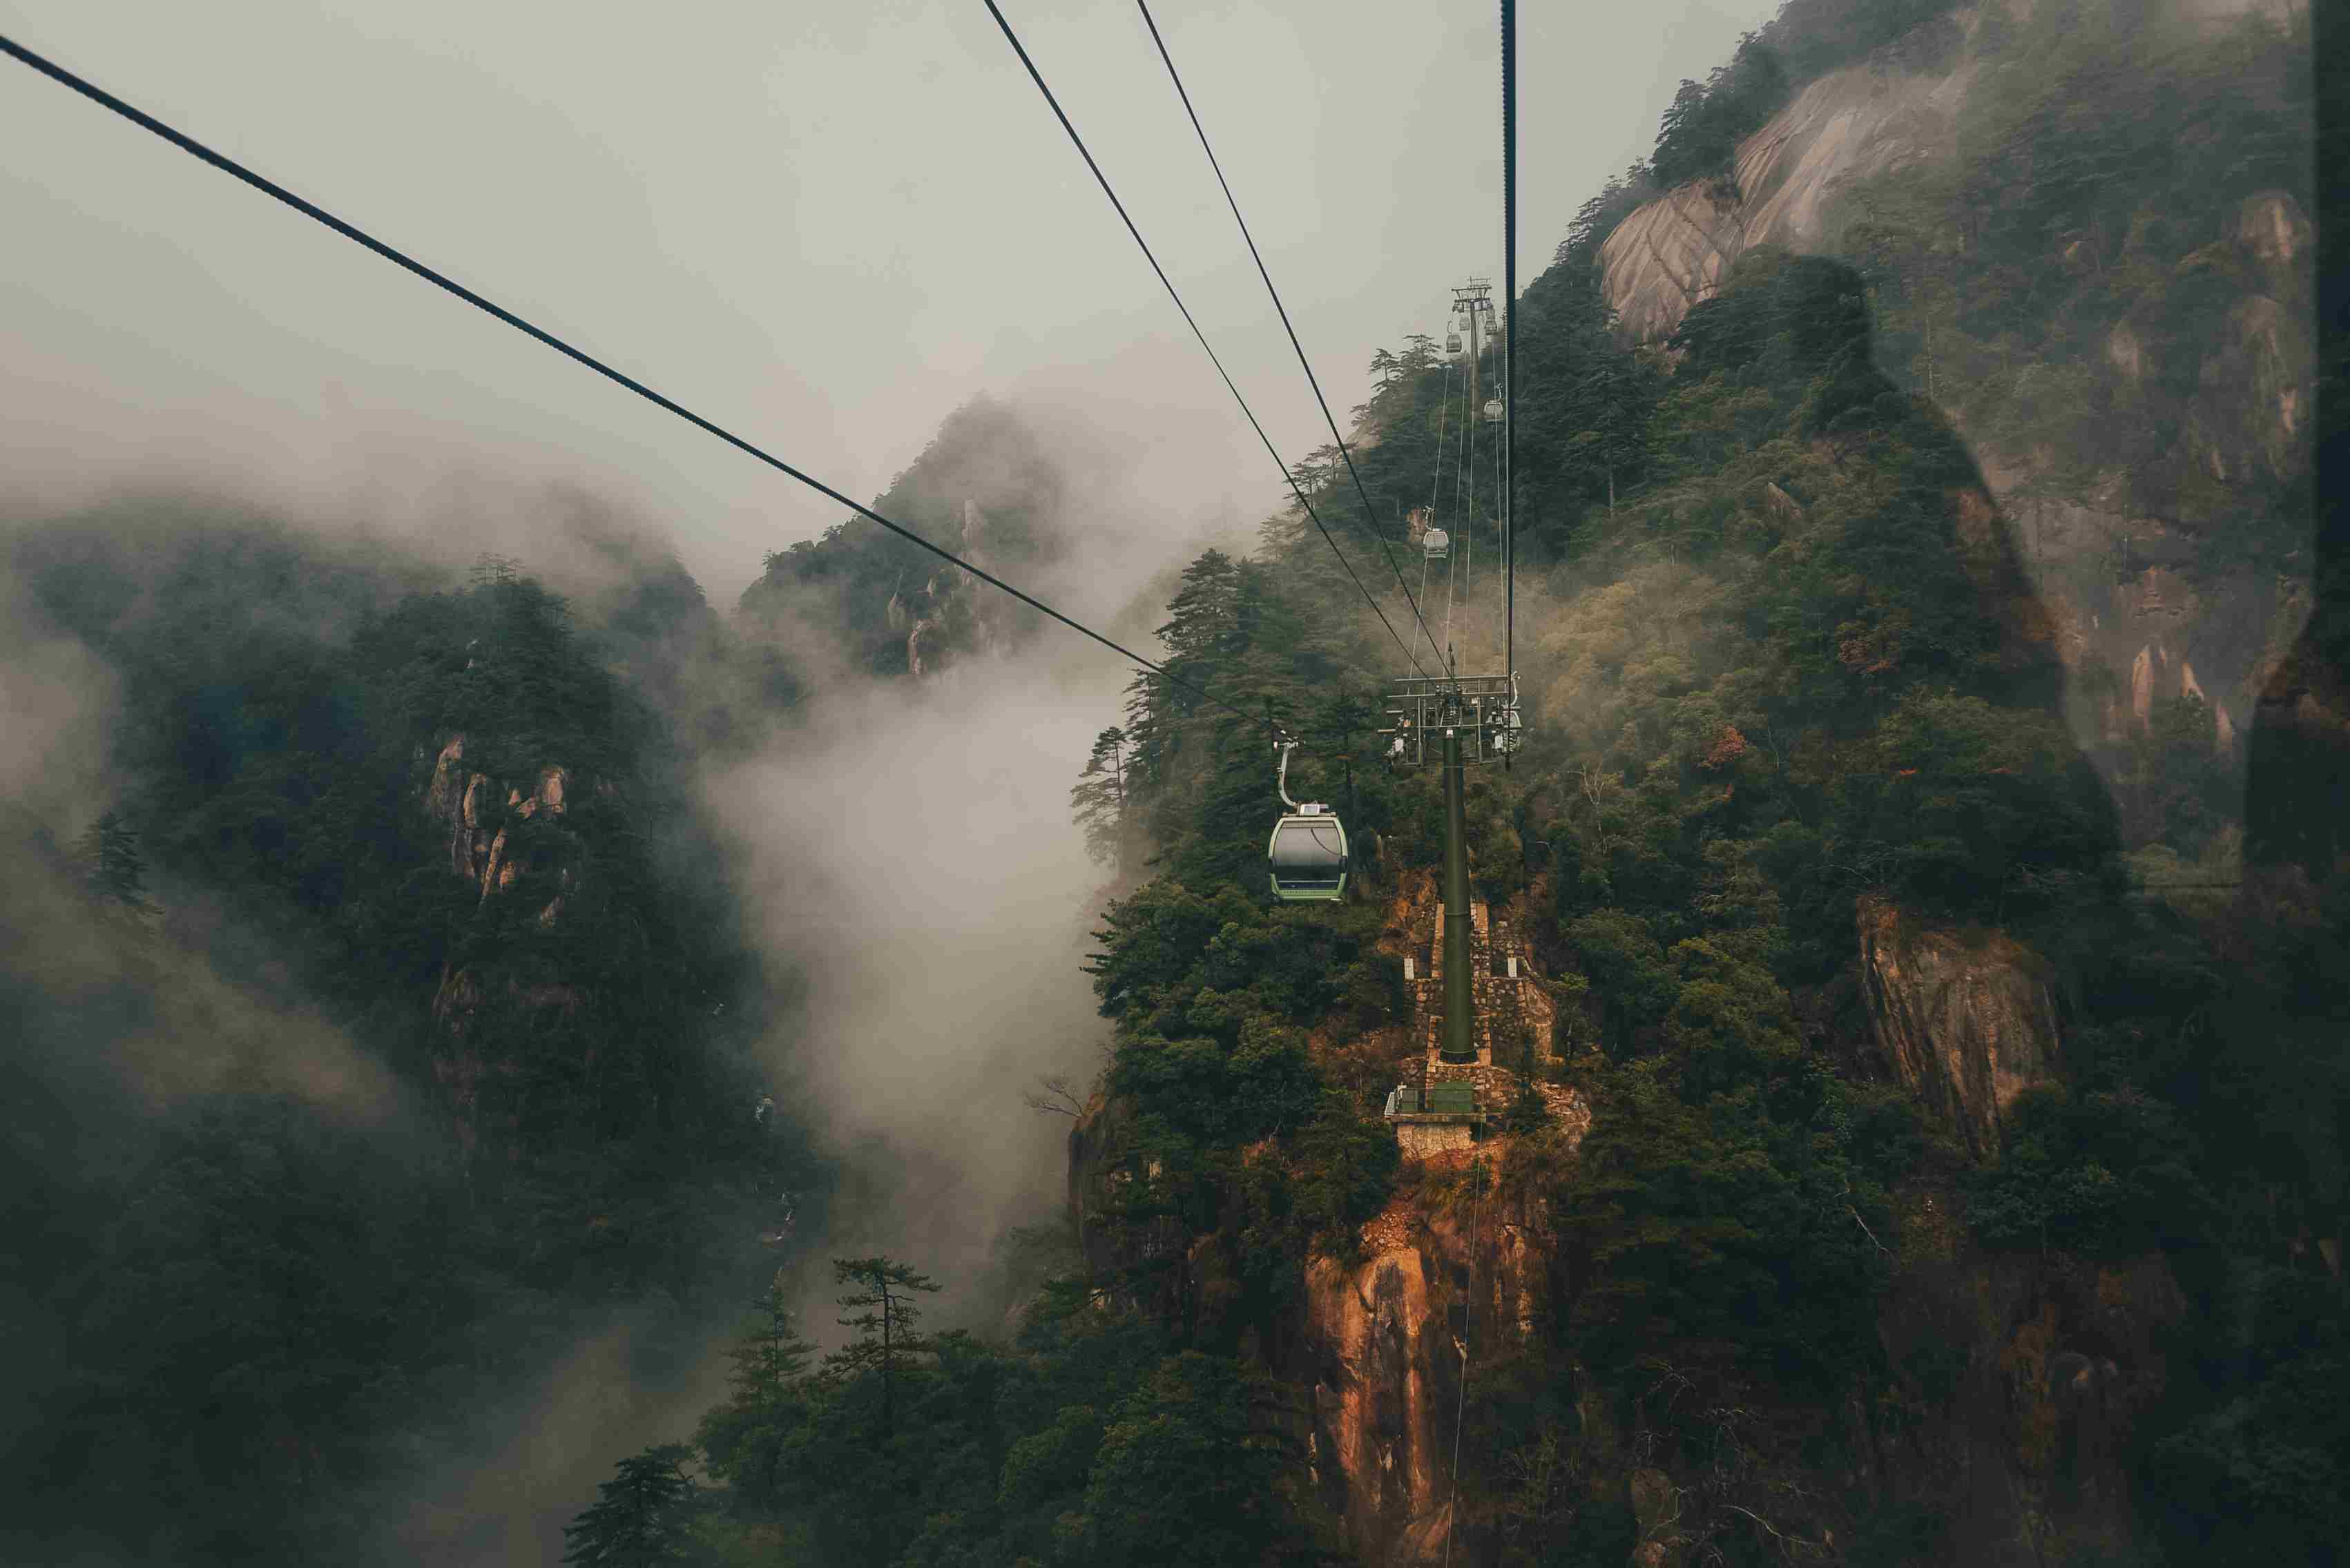 Cable cars on Huangshan Mountain, China